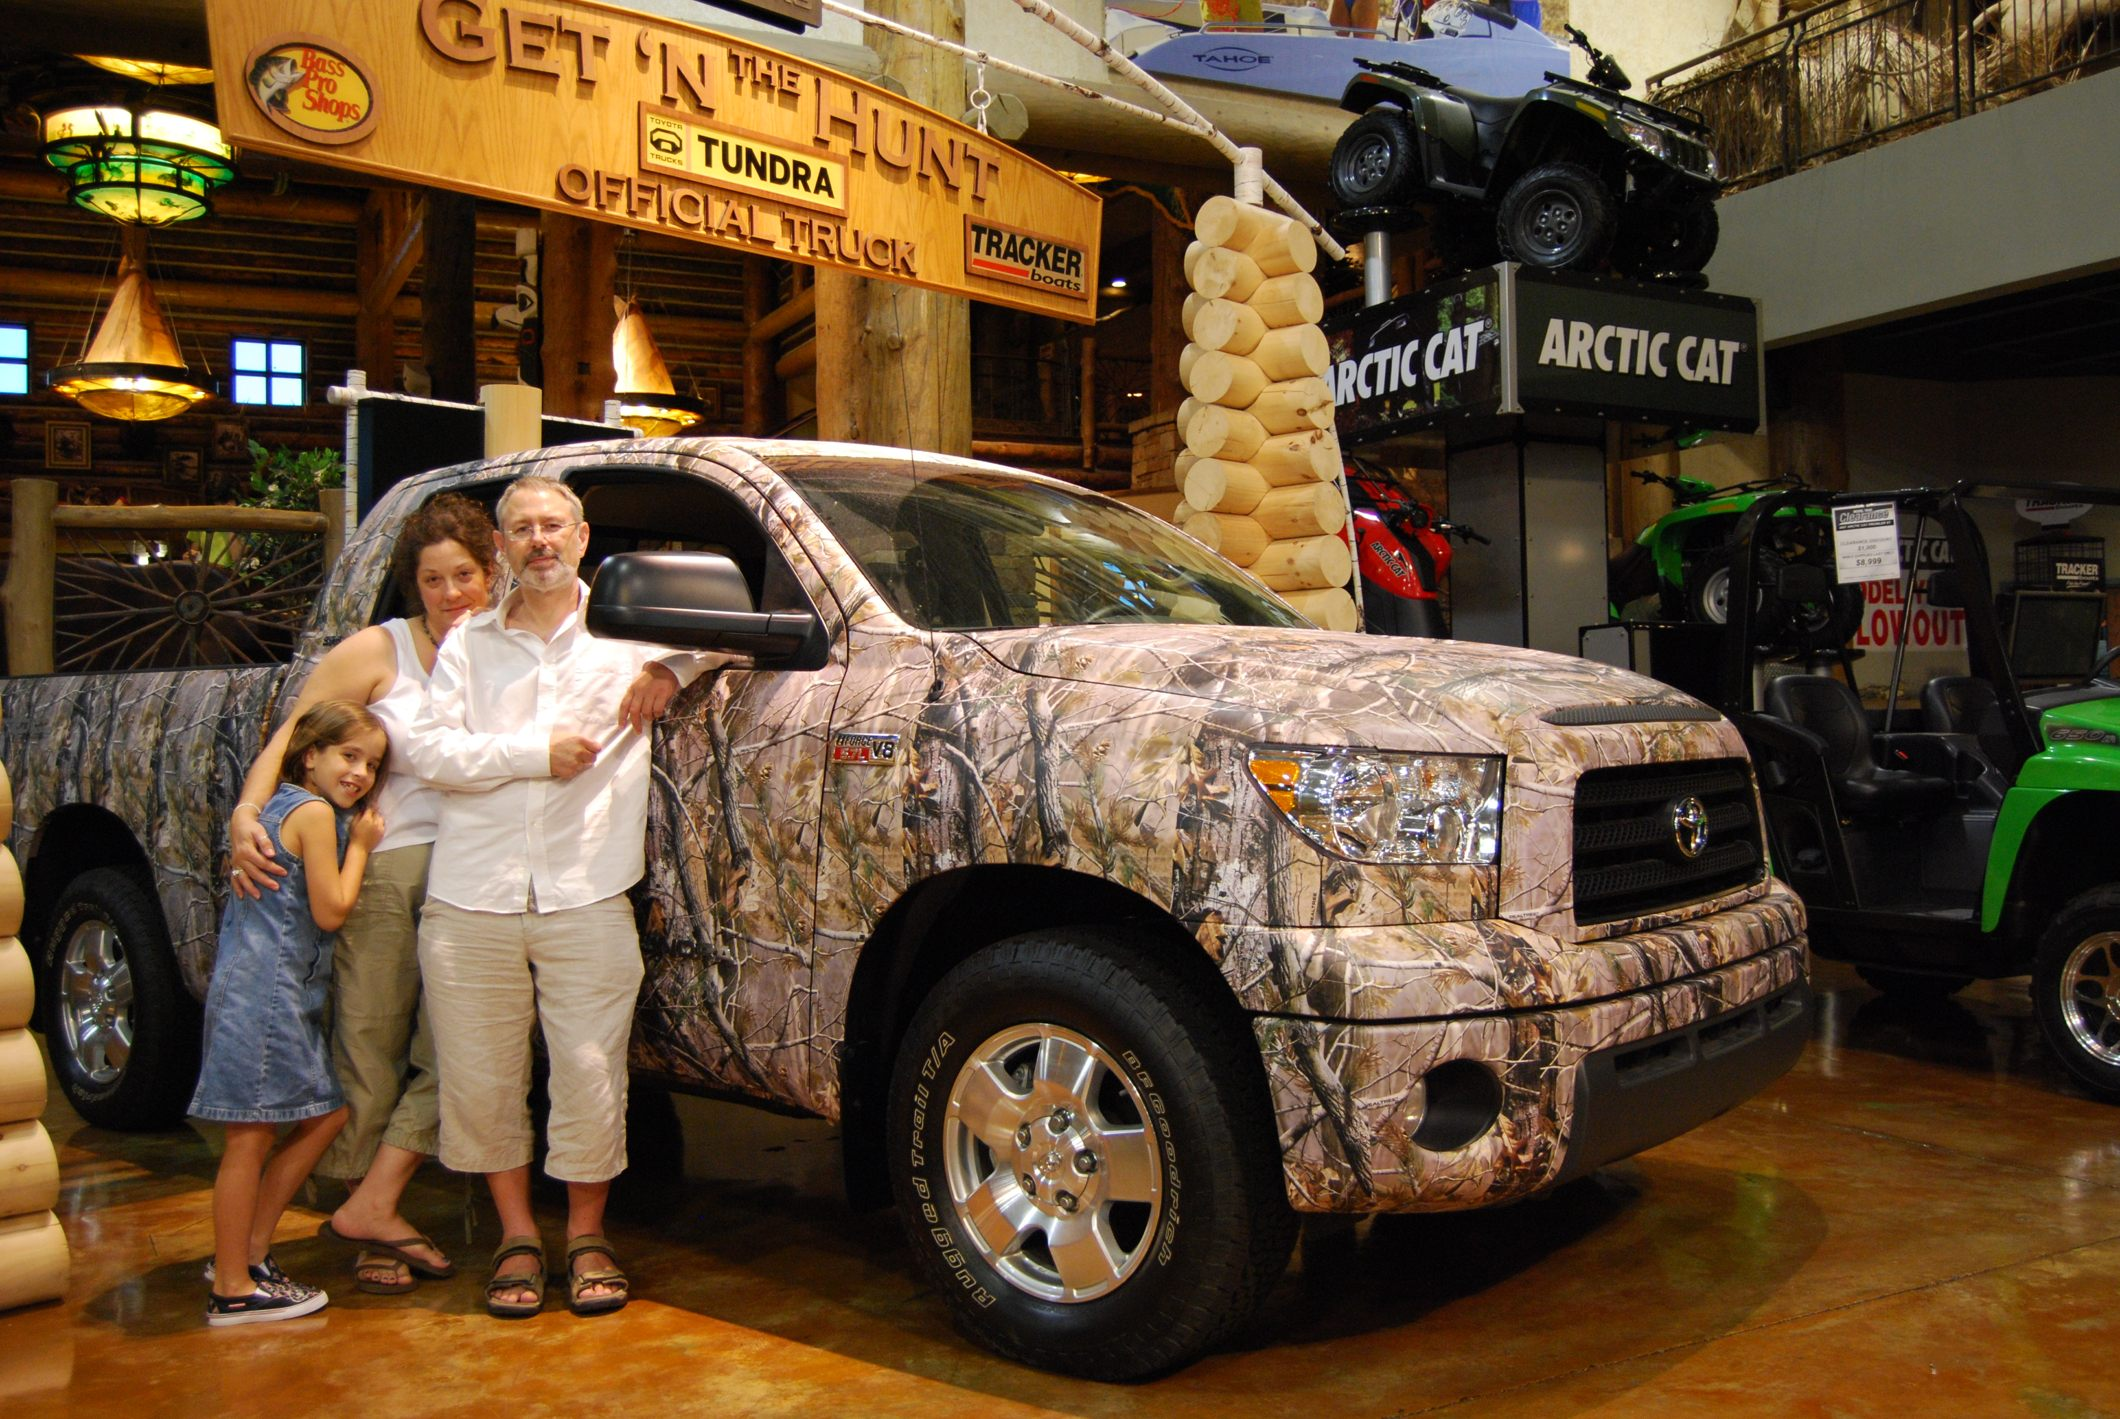 Gary Allman, Ginger Davis Allman and Lanie alongside a Camo decorated Toyota Tundra Pick-up